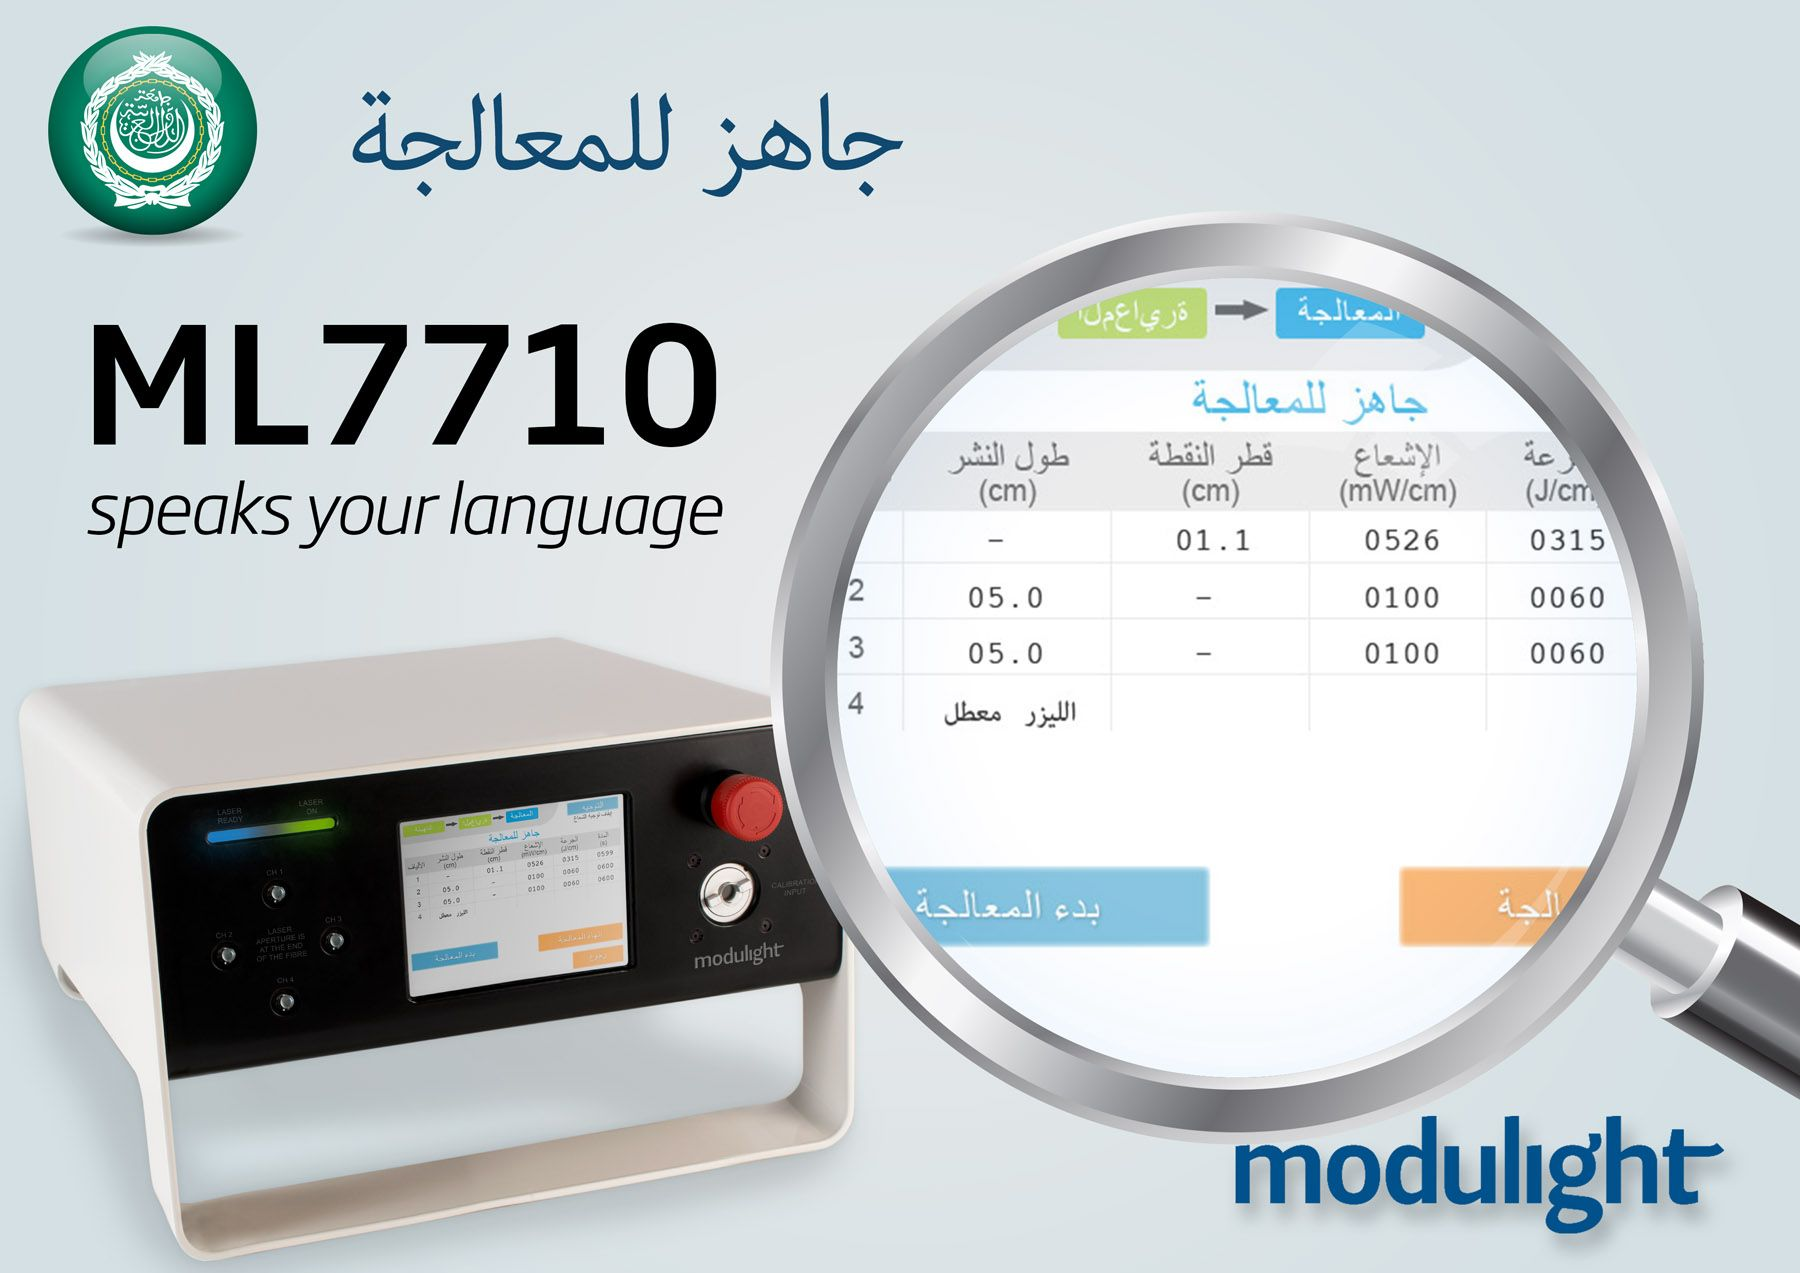 User interface now available in Arabic!